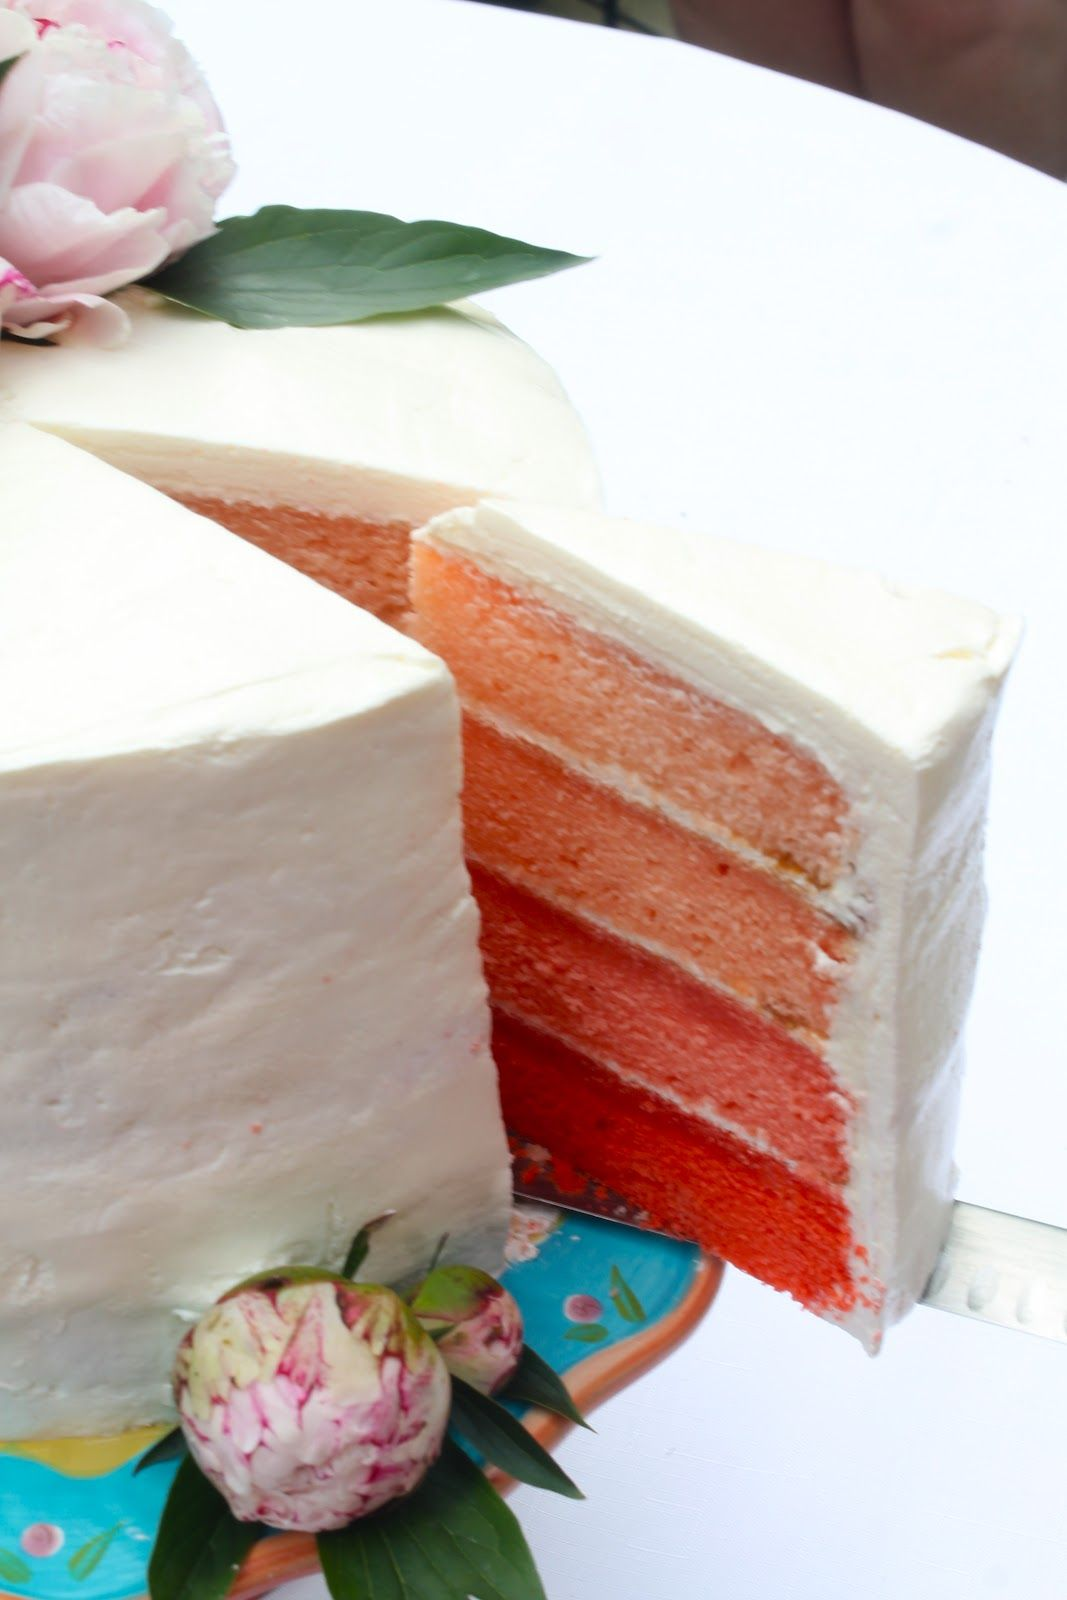 Yammie's Noshery: Pink Ombre Cake With Italian Meringue Buttercream